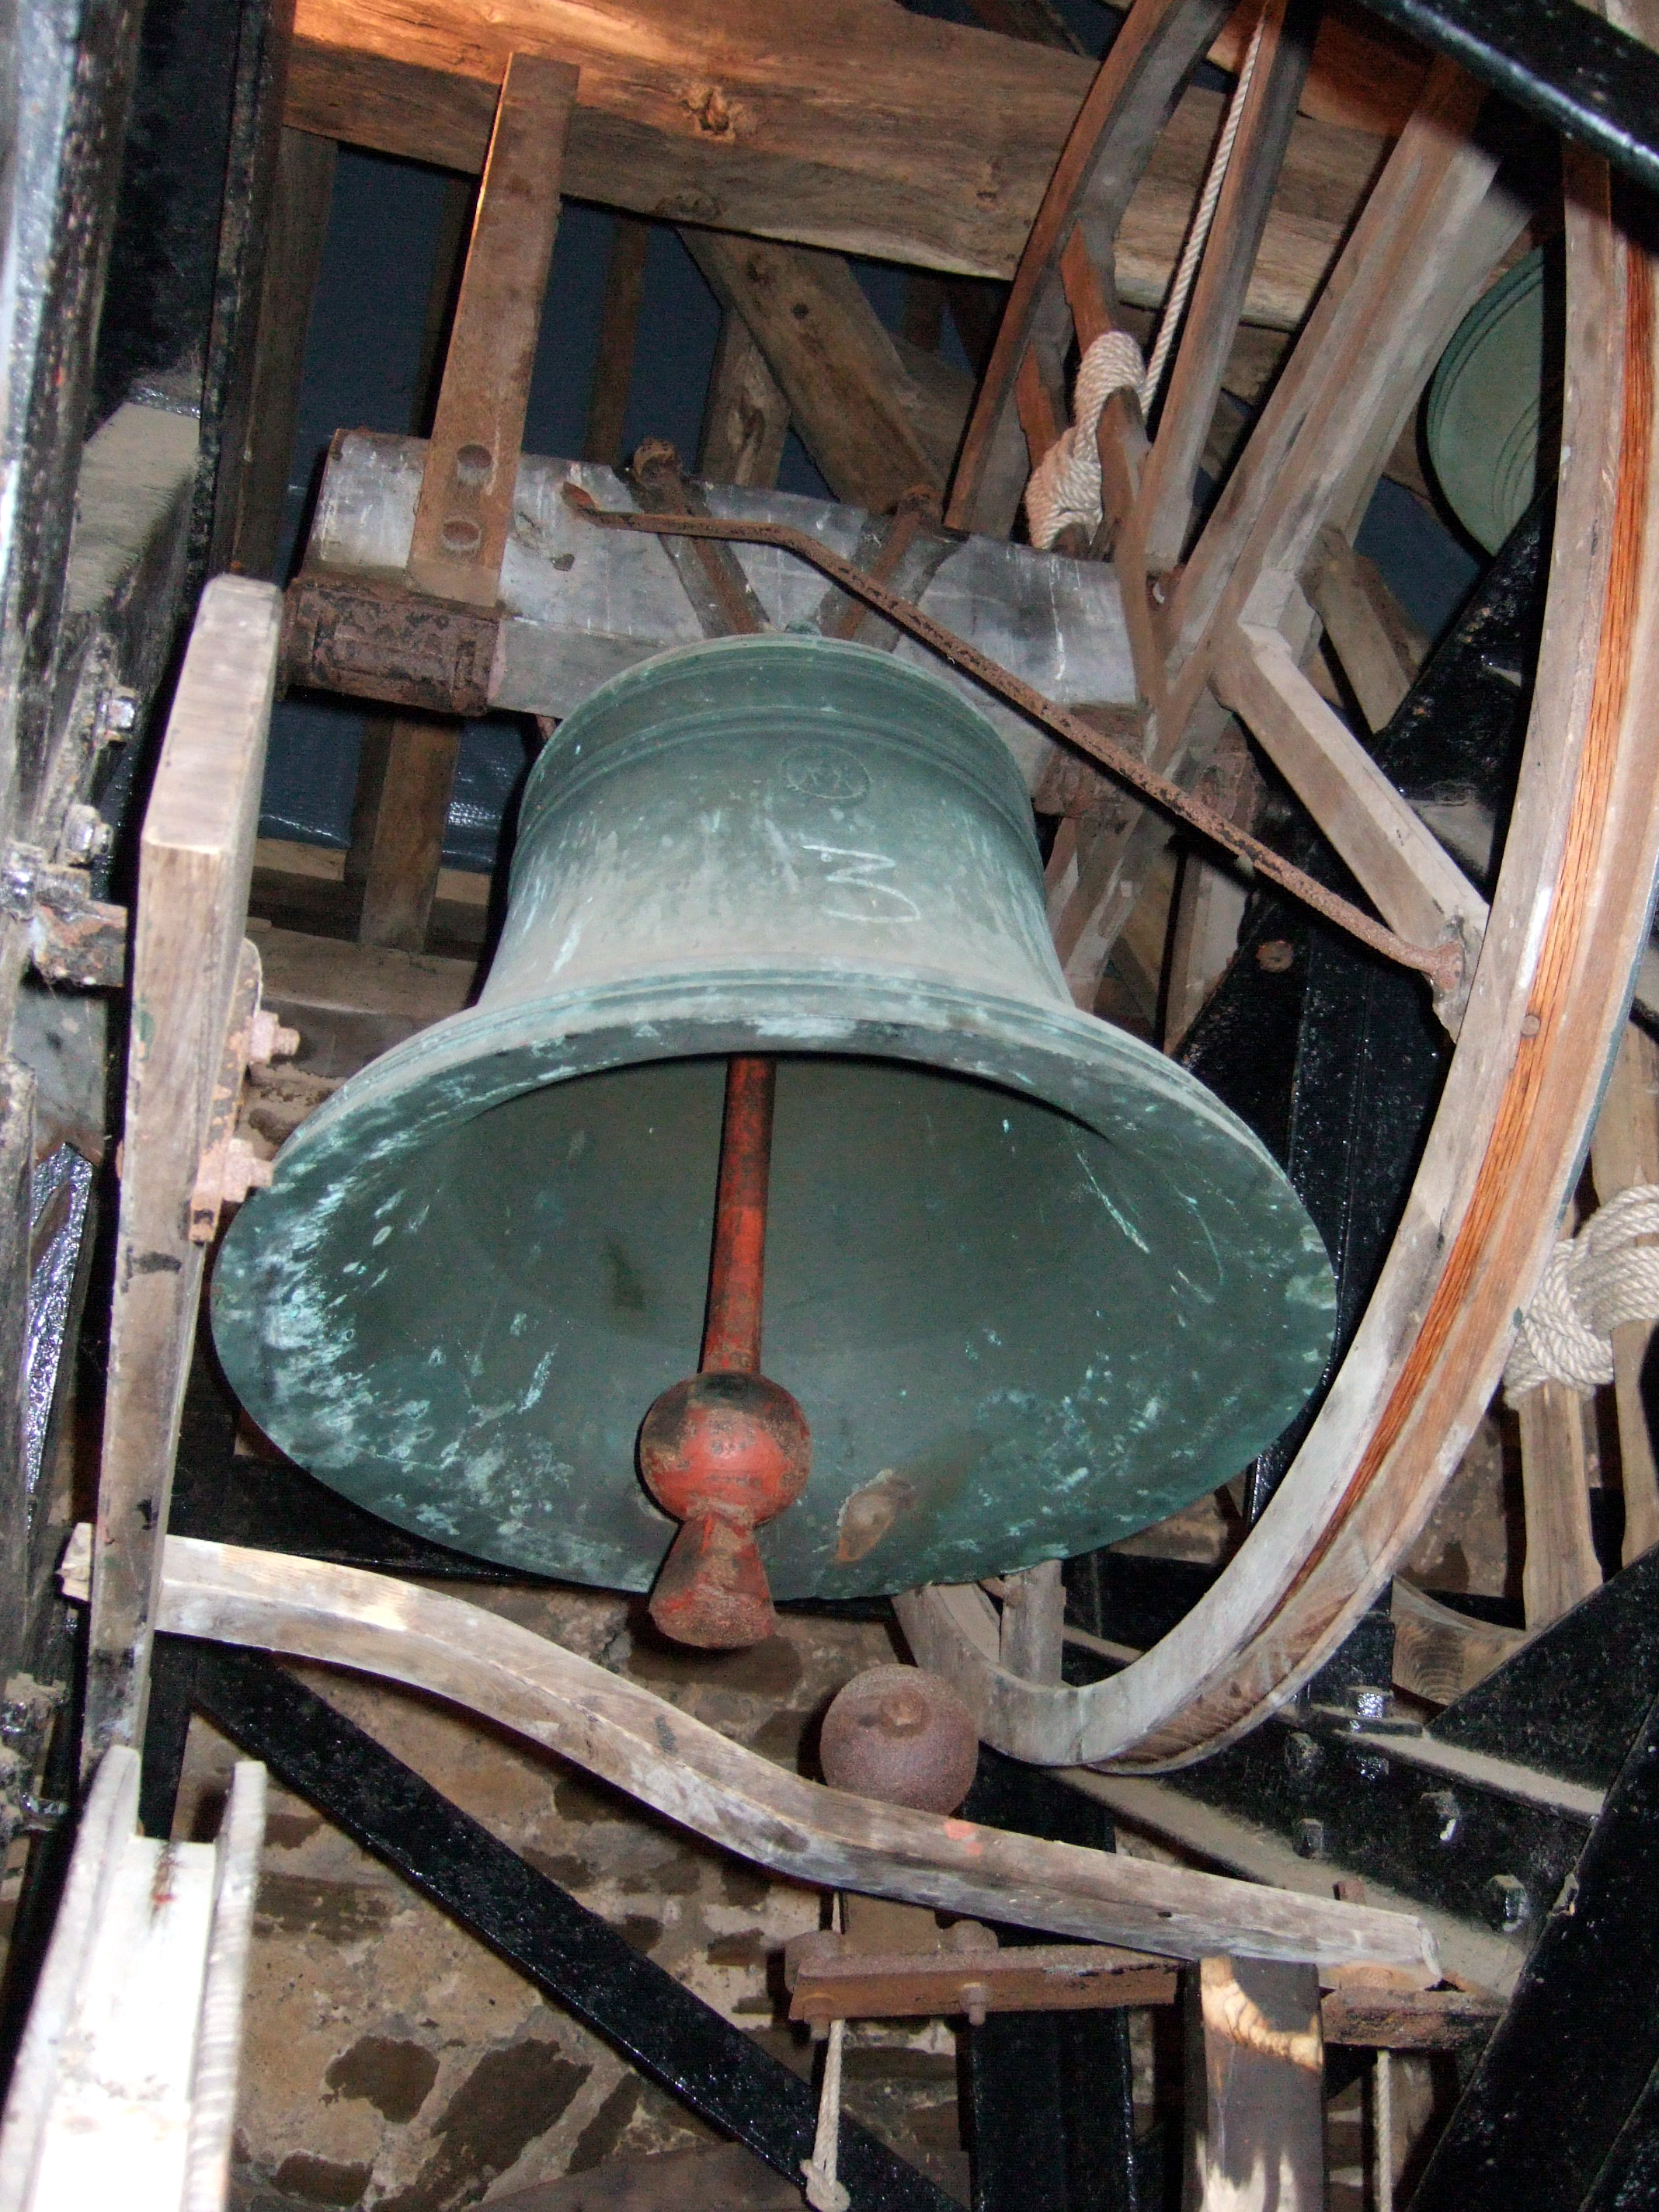 Bells have always been rung in times of joy and sorrow.  A peal of bells, for example, is rung at a wedding or celebration and a slow solemn ring at times of sadness.  Bells are often rung at the start of a church service. At Christmas they are traditionally rung in celebration of the birth of Chris...